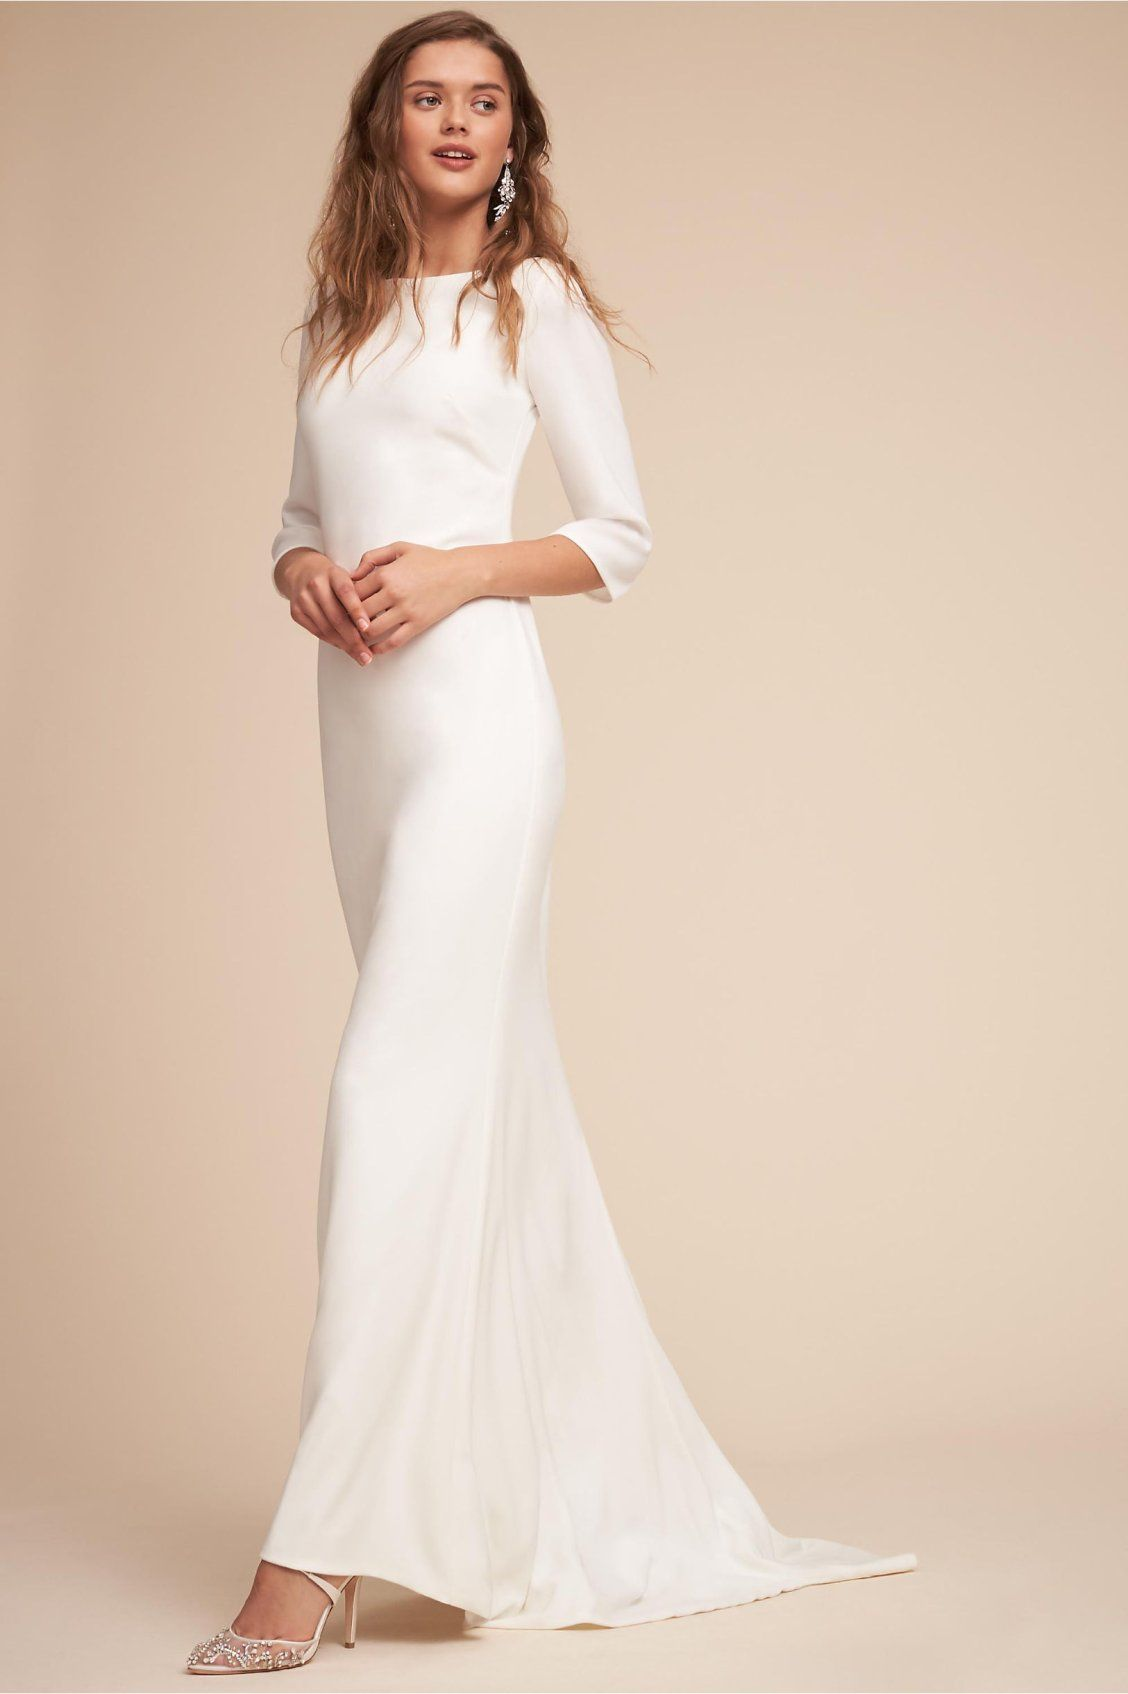 Bacall gown from bhldn the modern bride pinterest gowns bacall gown from bhldn ombrellifo Images